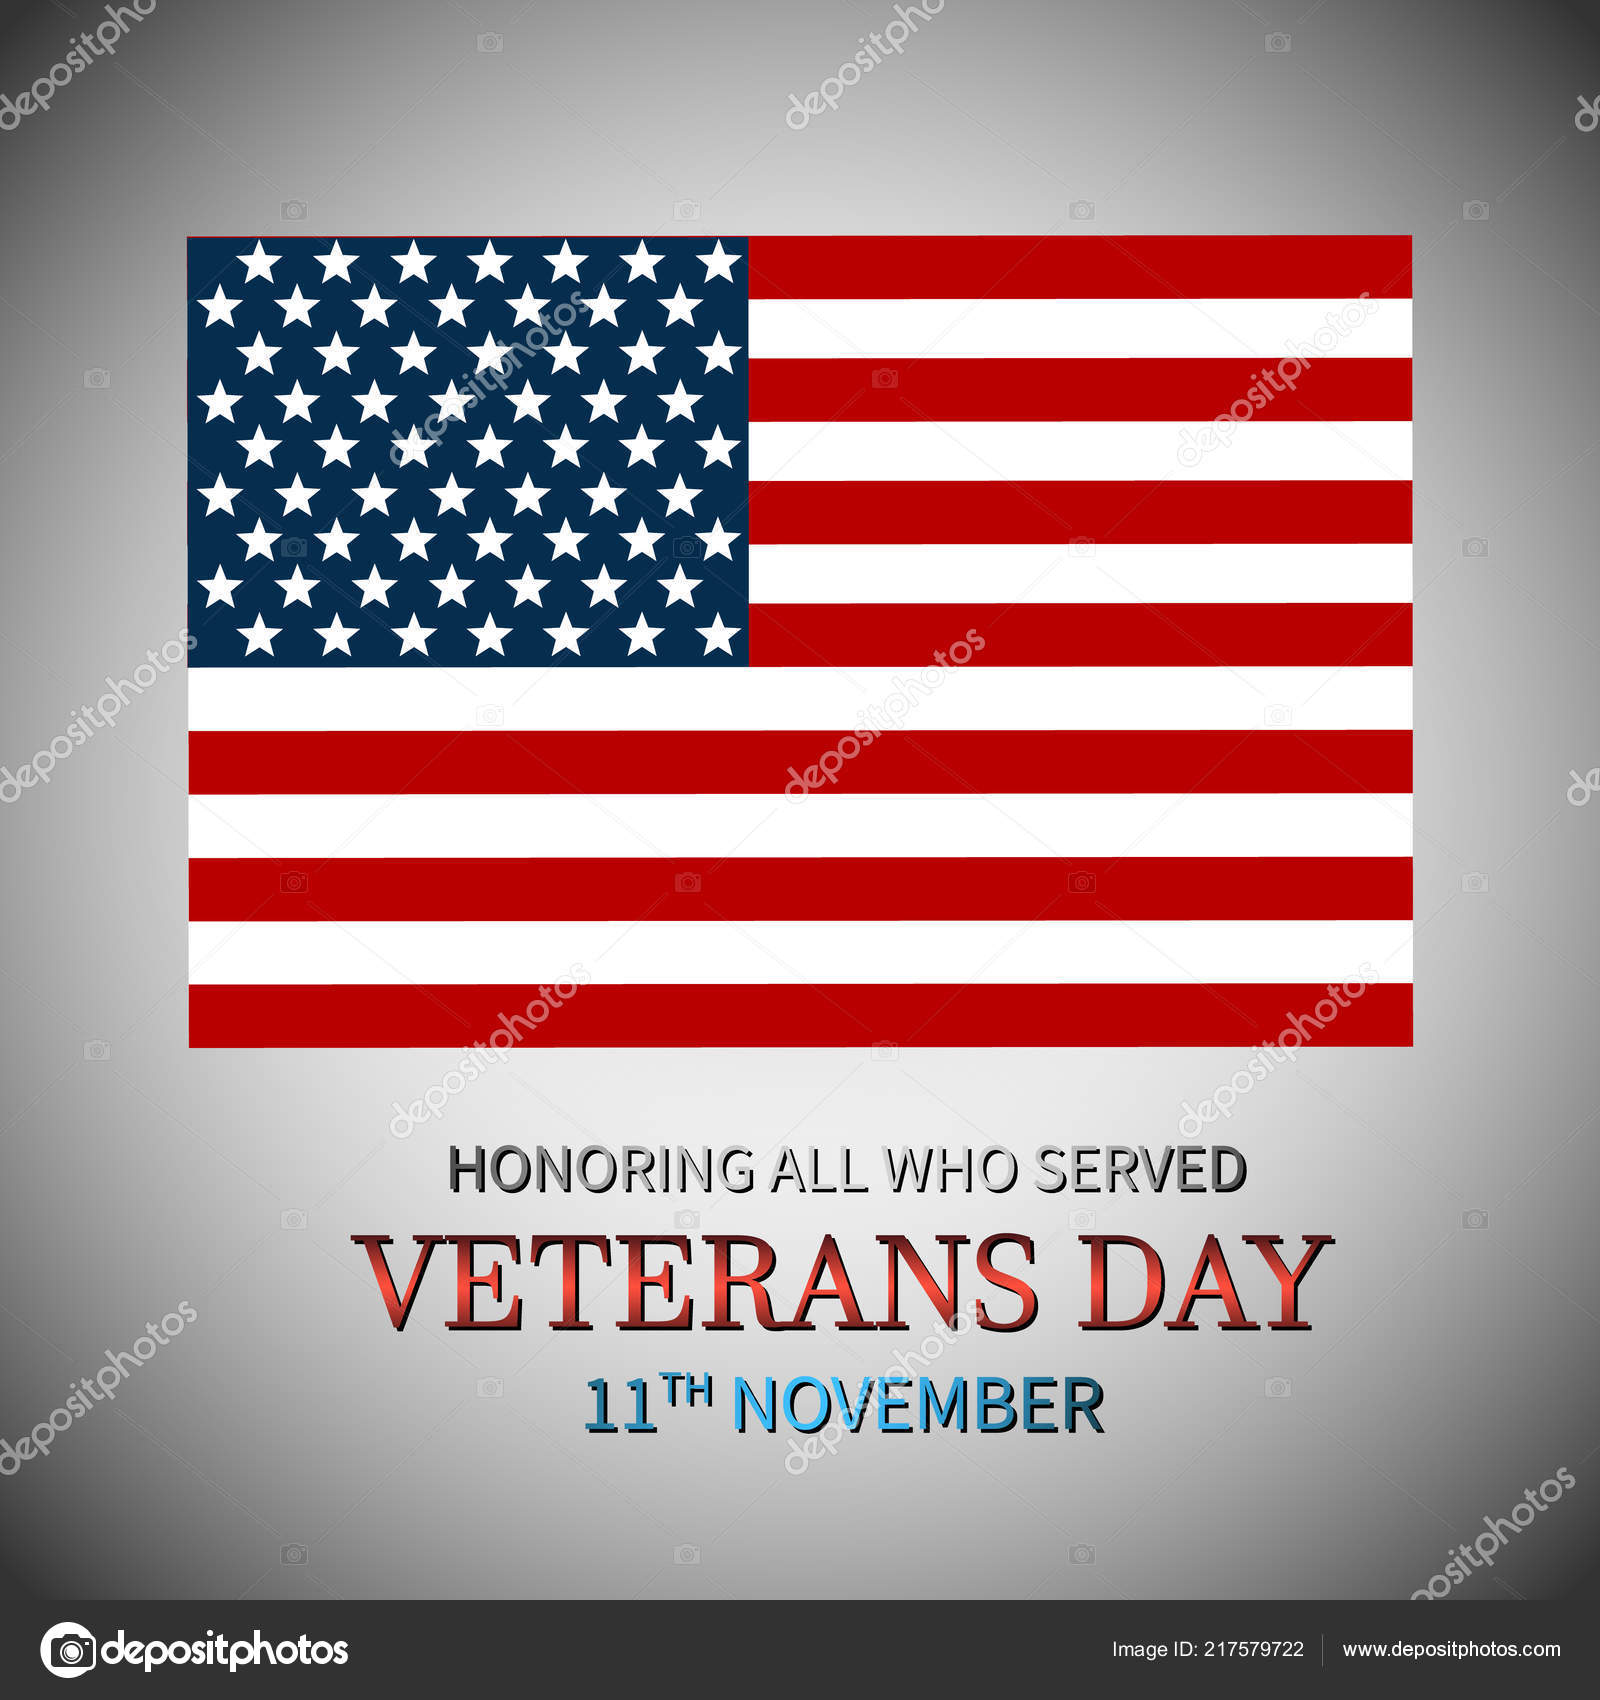 Veterans Day Usa American Flag Honoring All Who Served Vector